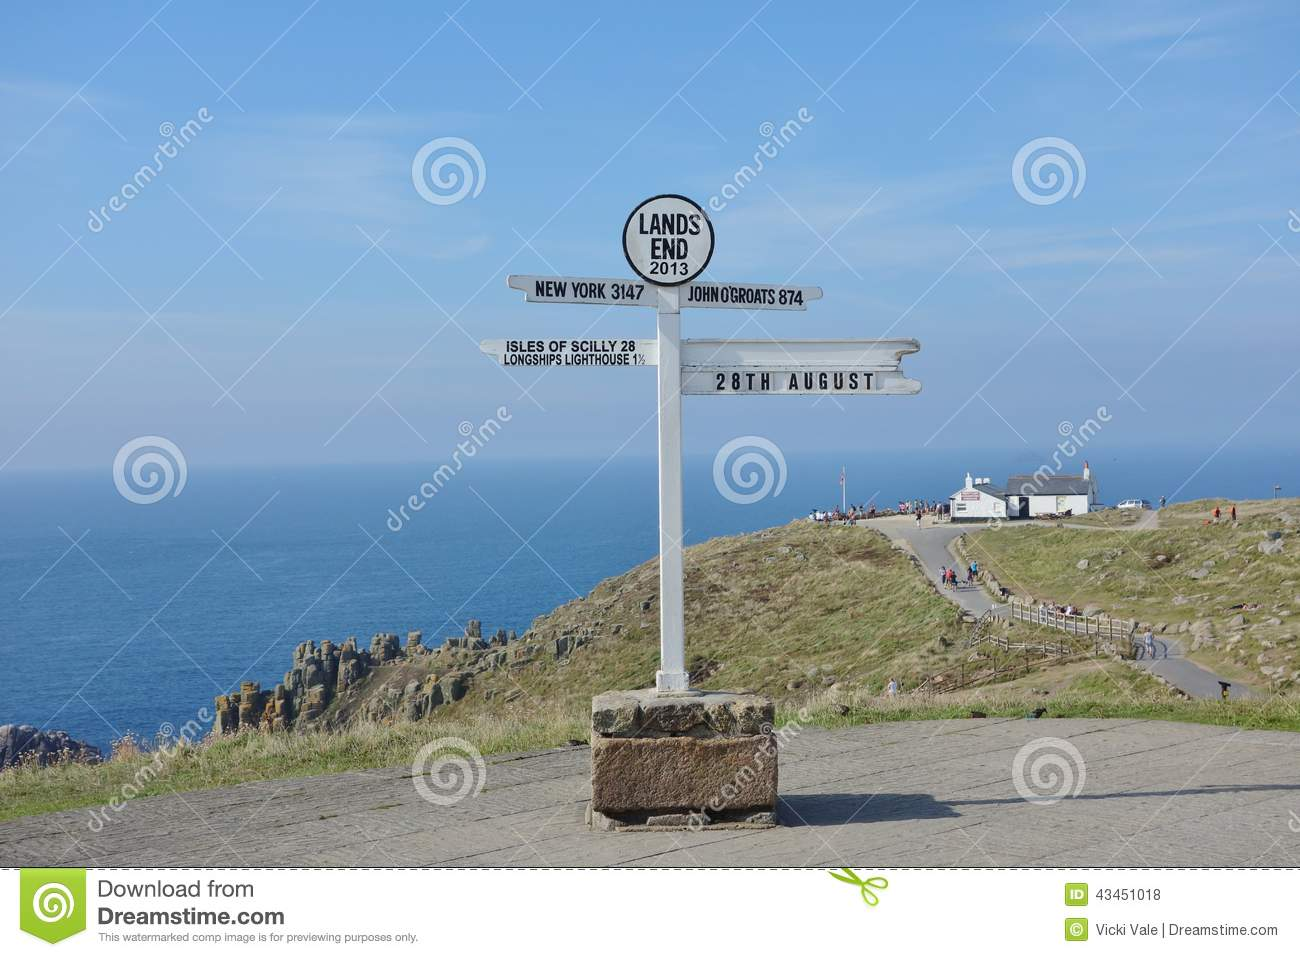 lands end by john foulcher Land's end in the far southwest and john o'groats in the far northeast are considered the furthest points in great britain and travelling the whole route is a mighty.